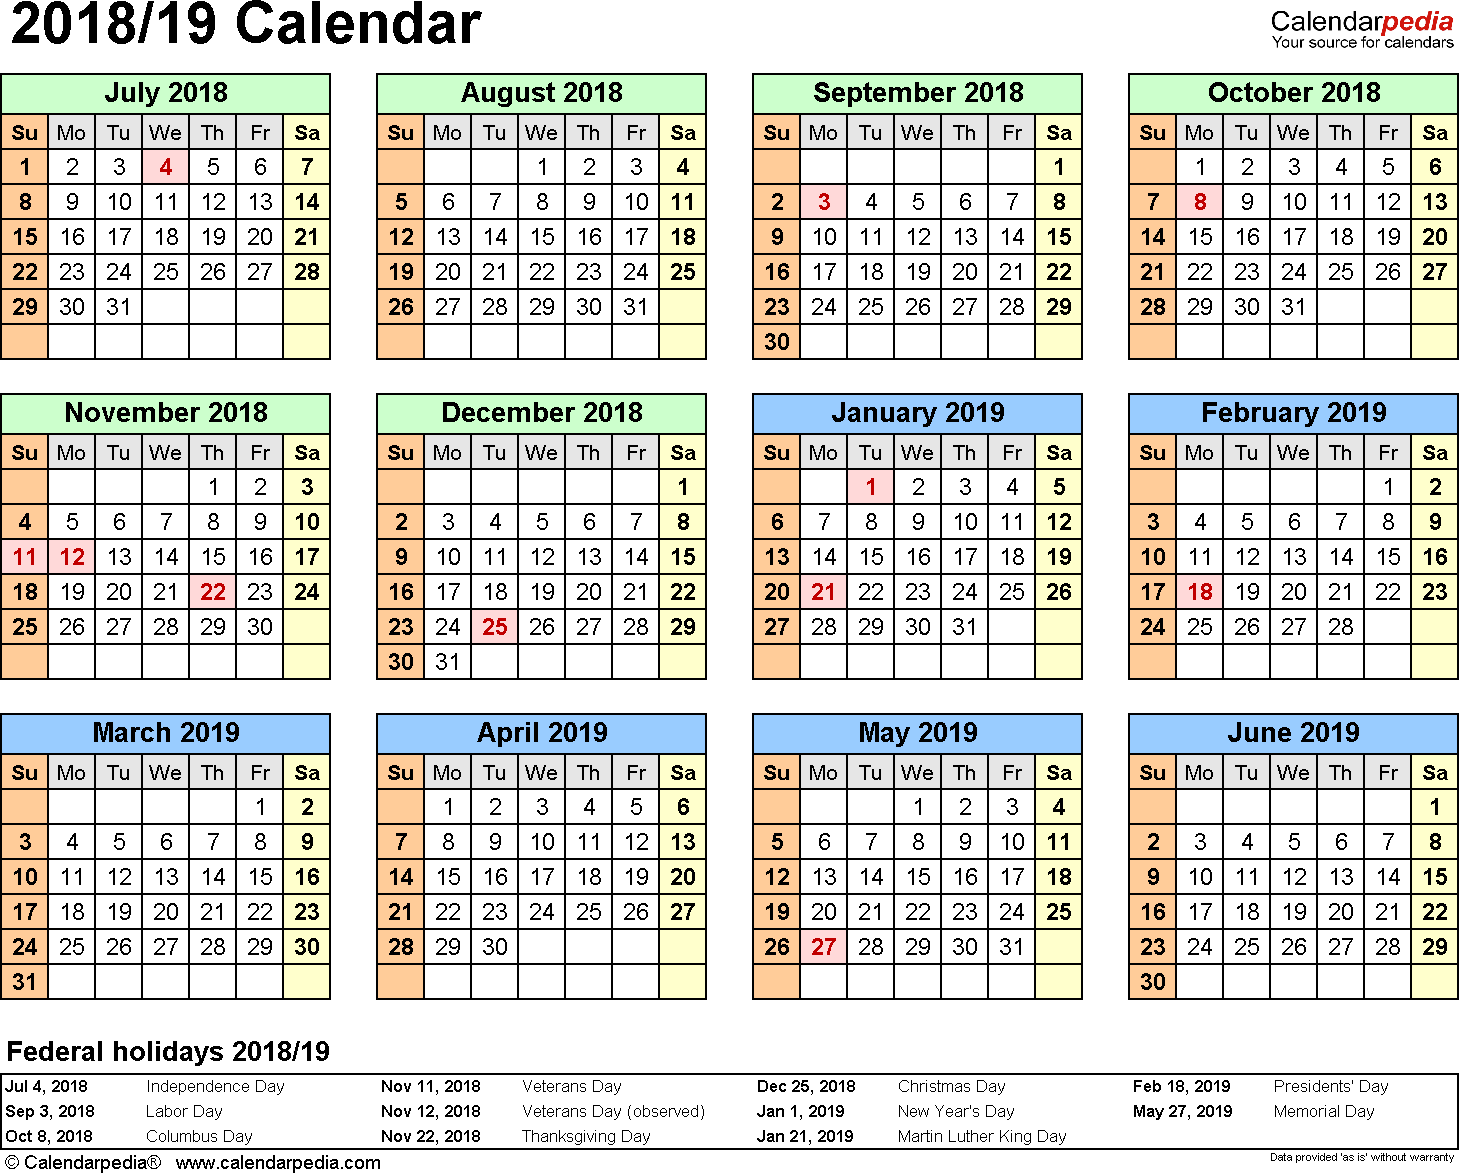 Template 3: 2018/2019 split year/half year calendar, for PDF, landscape orientation, year at a glance, 1 page